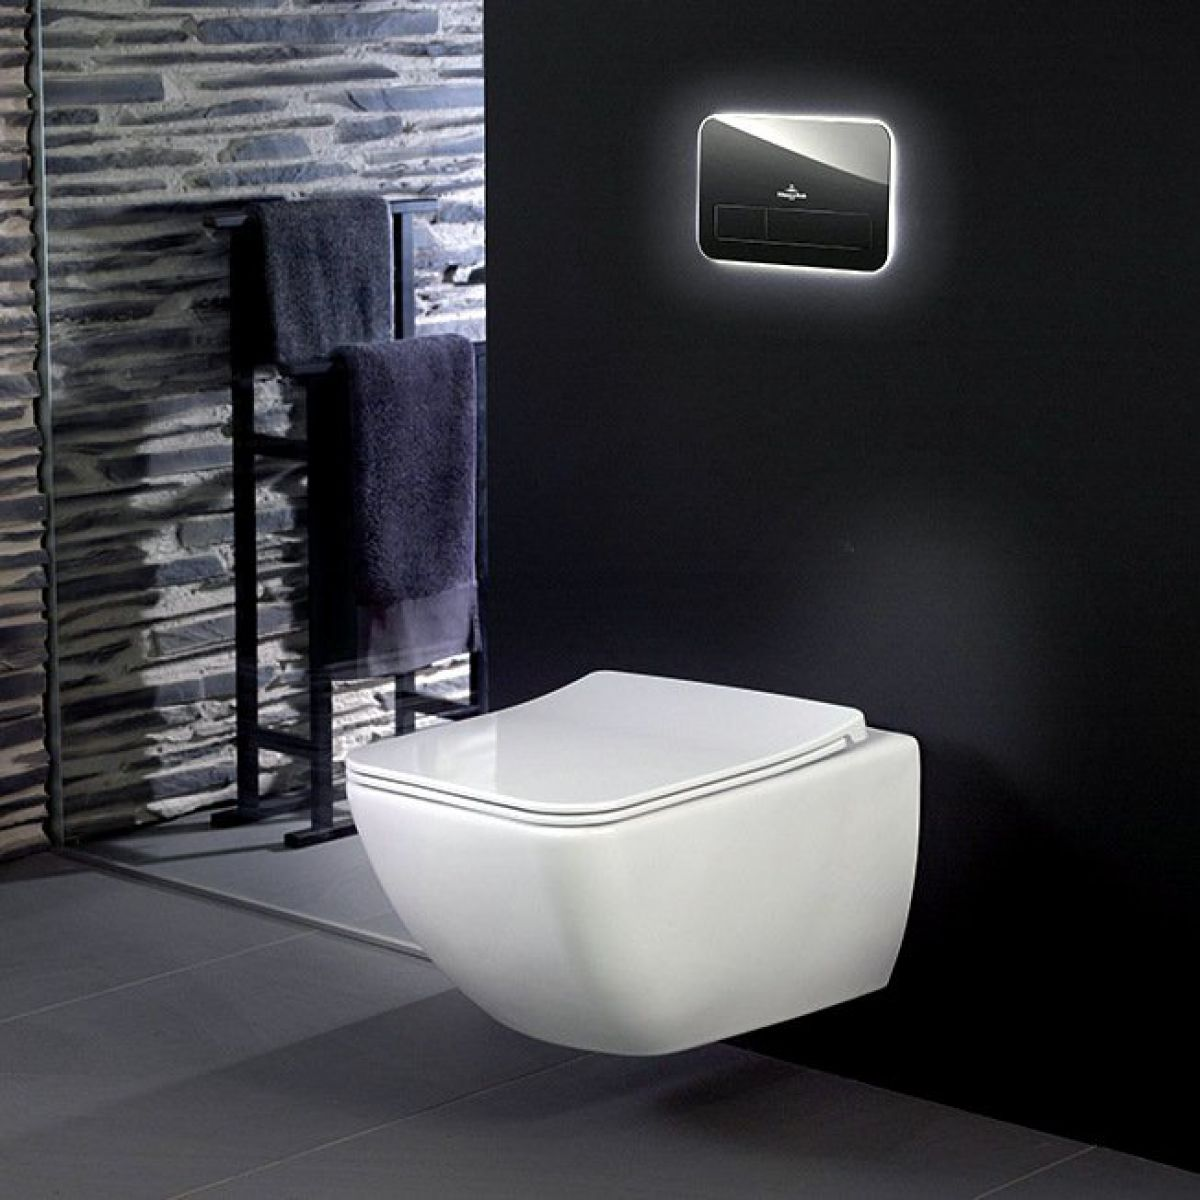 villeroy boch venticello rimless wall hung toilet uk bathrooms. Black Bedroom Furniture Sets. Home Design Ideas